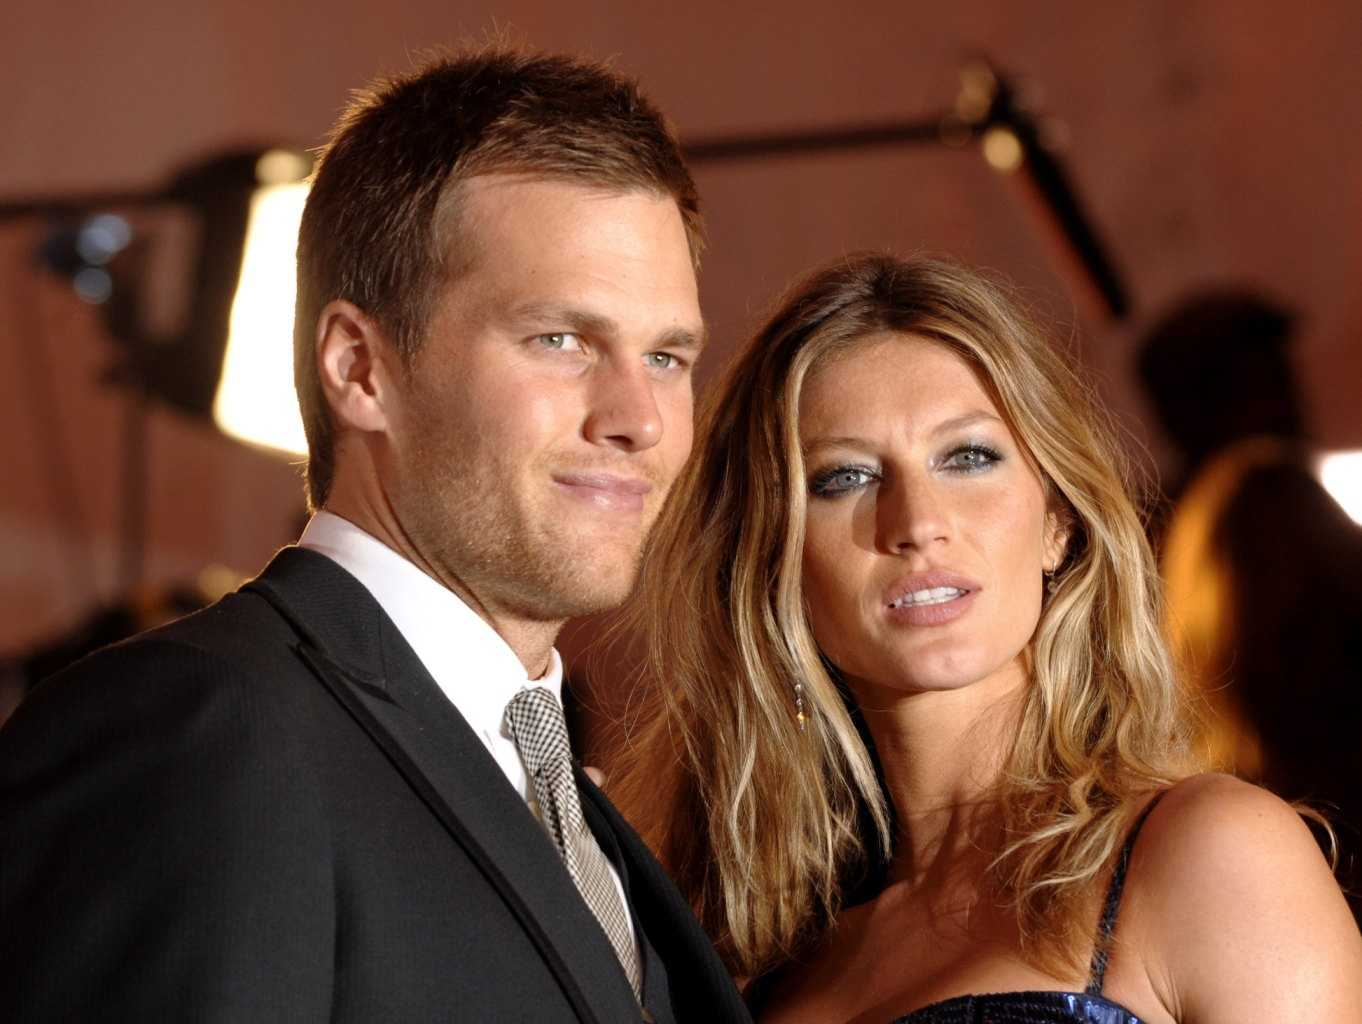 Tom Brady Addresses Gisele Bundchen's Concussion Comments On ESPN